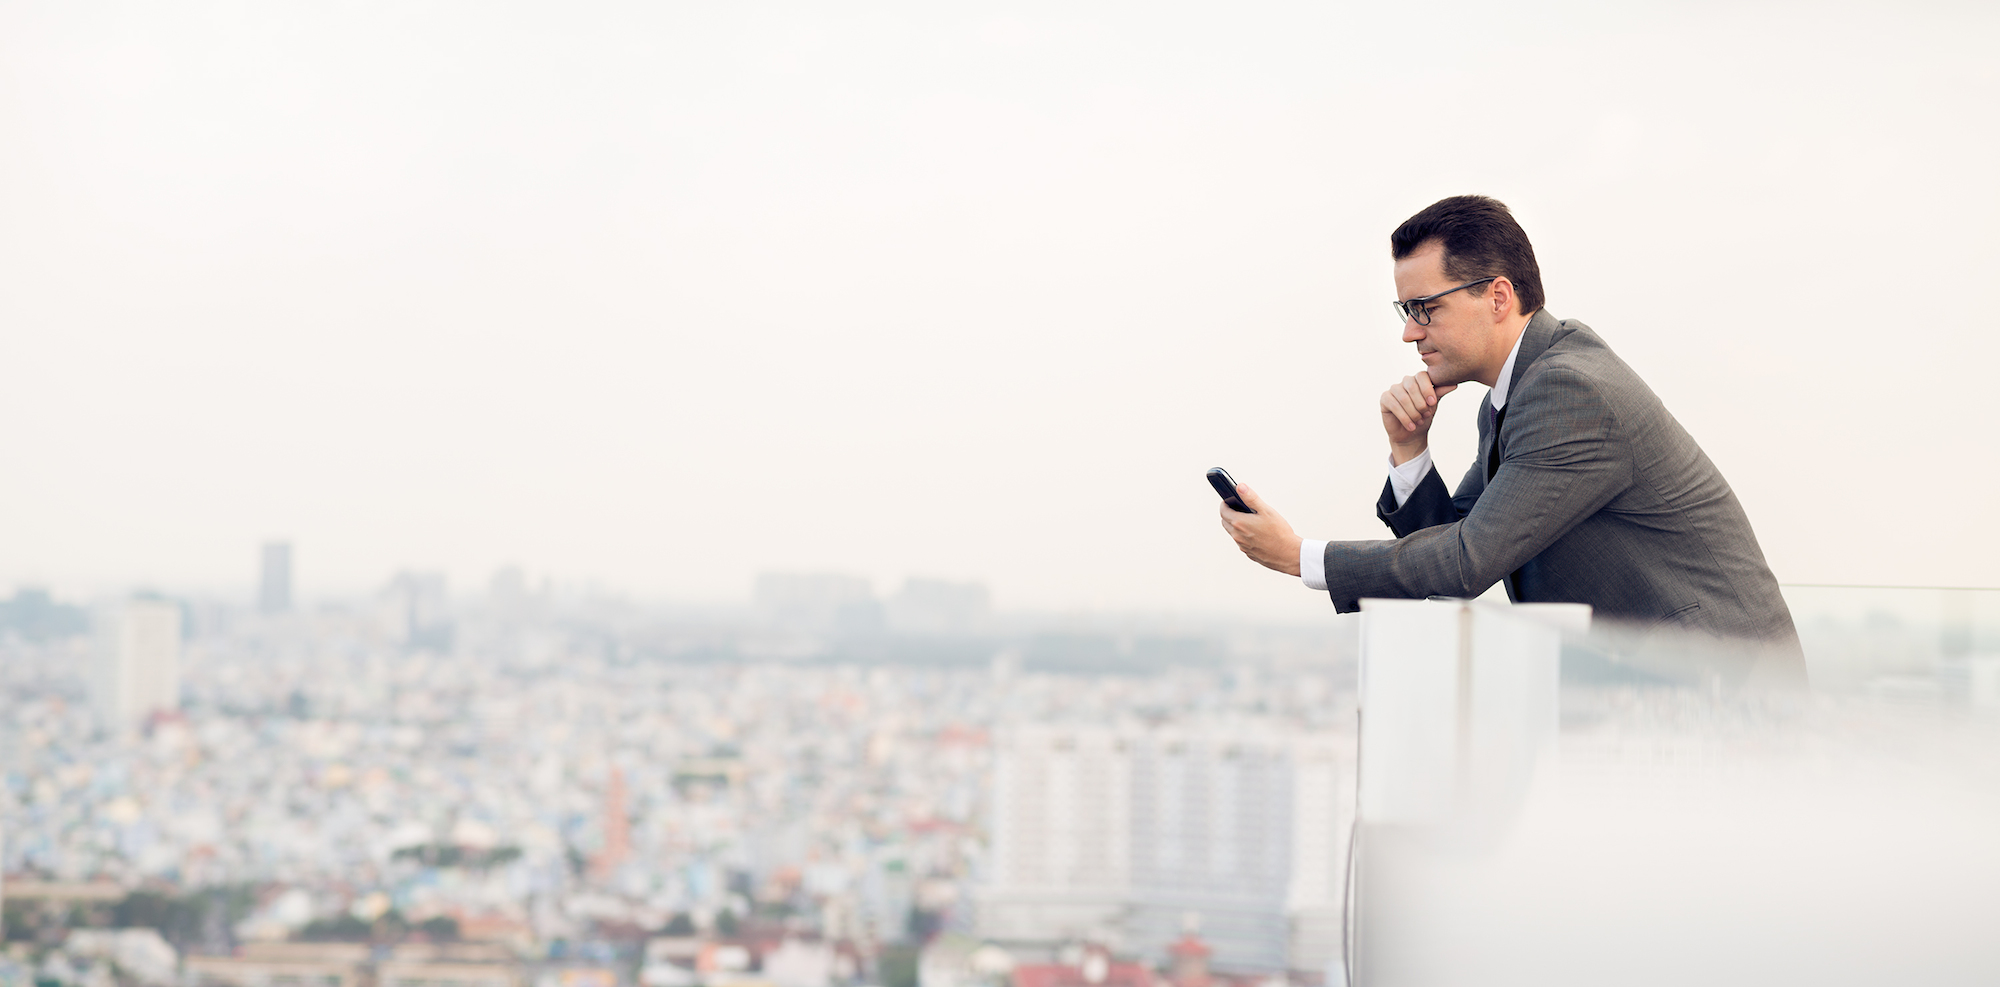 9 Overlooked Things to Consider Before Going Mobile-First